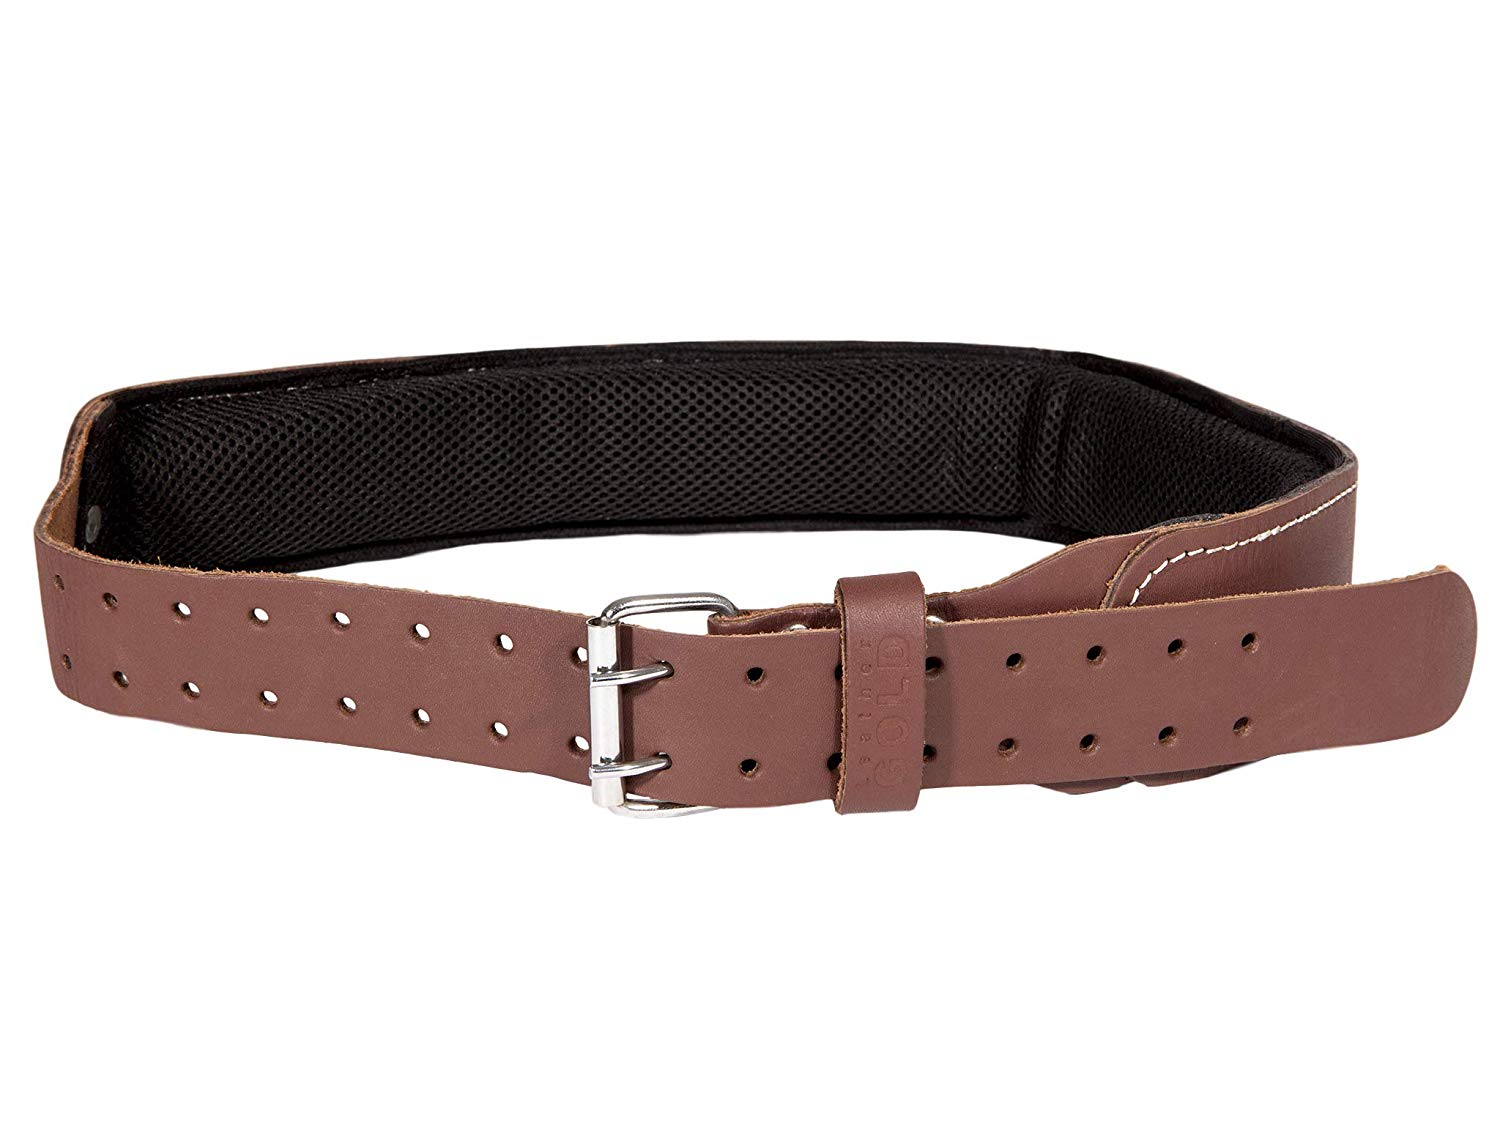 Leather Gold Padded Tool Belt, 3 Inch Wide | Genuine Grain Leather Belt with Double Prong Buckle and Two Hole Rows | Comfortable Mesh and Foam Padding | Built Tough for Pouches and Construction Tools